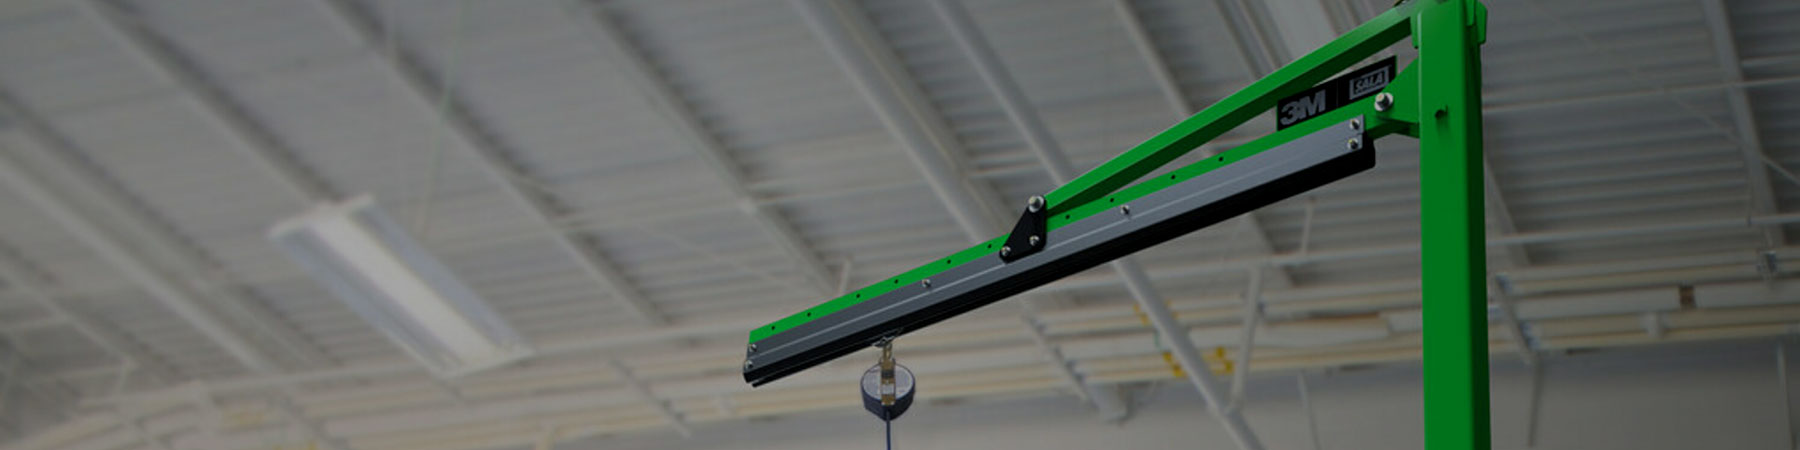 FlexiGuard Portable Counterweight Jib Anchor